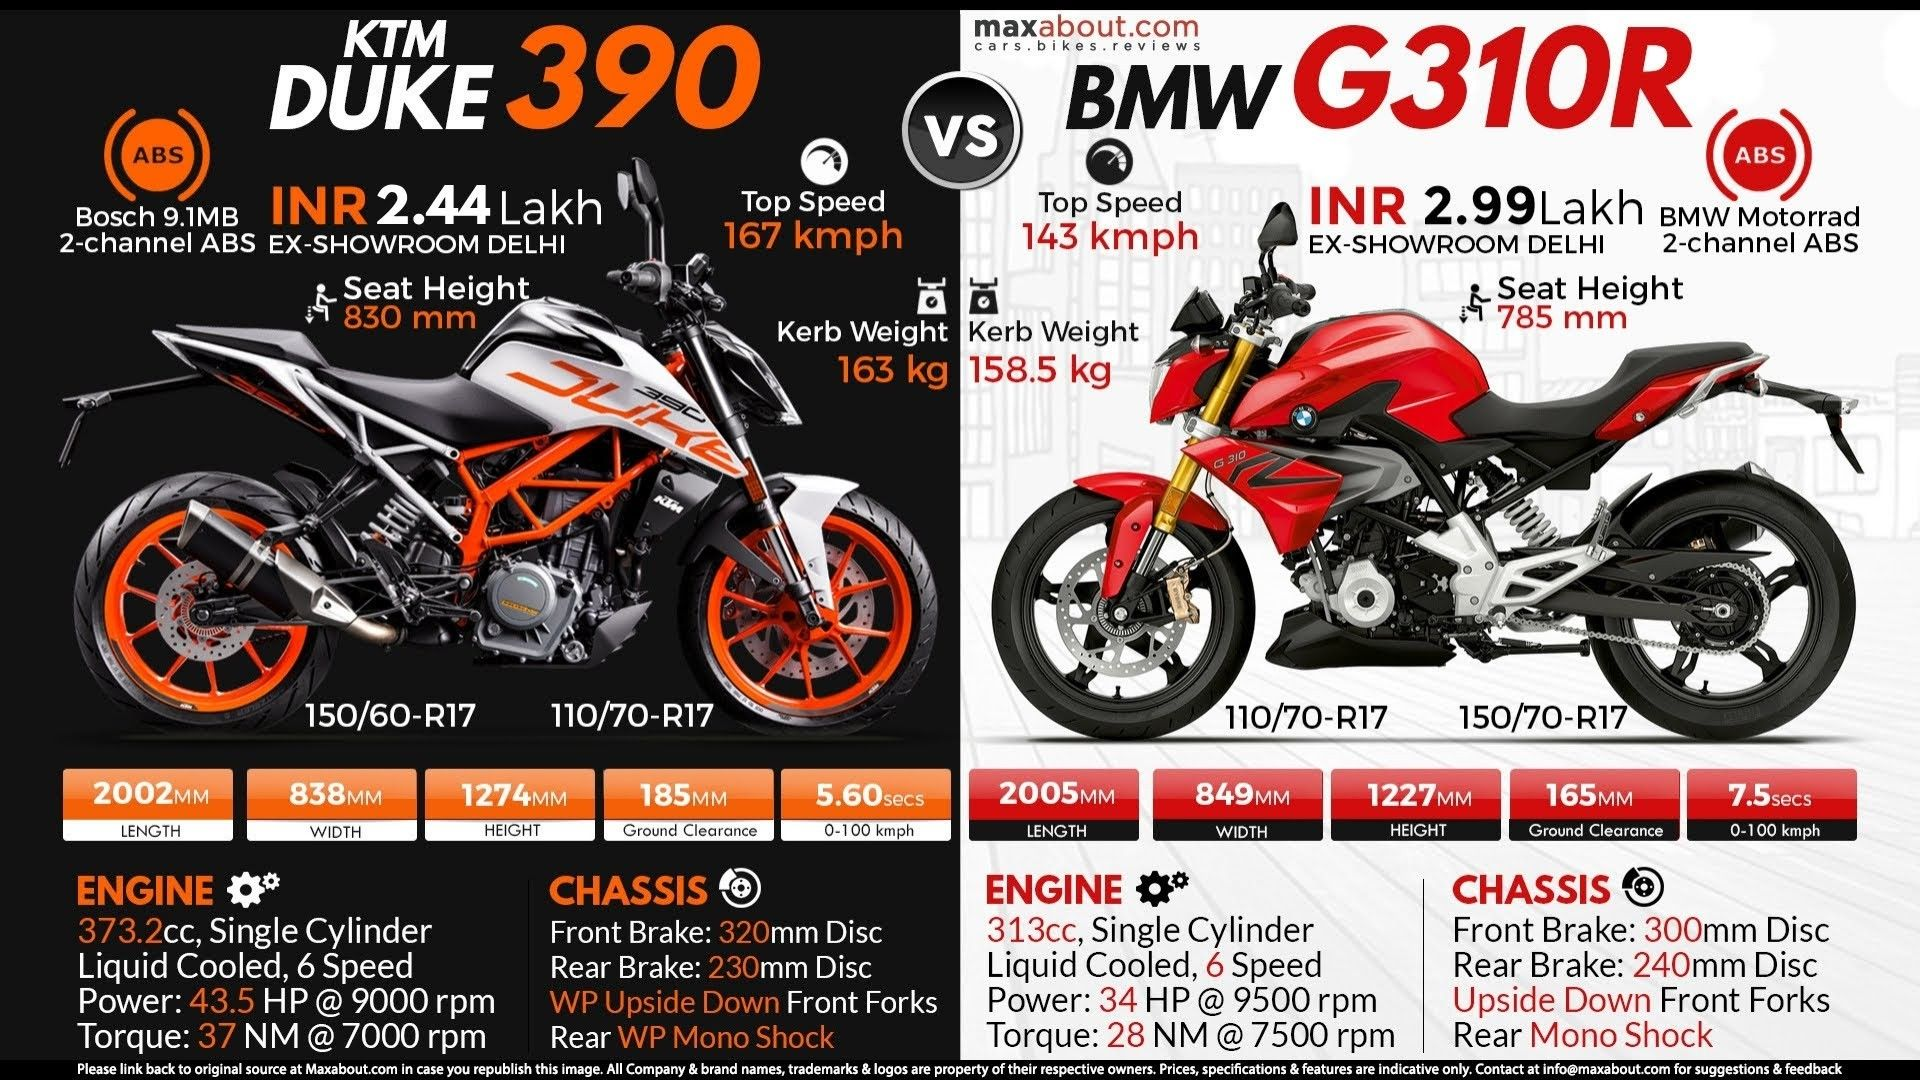 Pin By Prikshitsaini On Bikes Infographic Bmw Motorrad Ktm